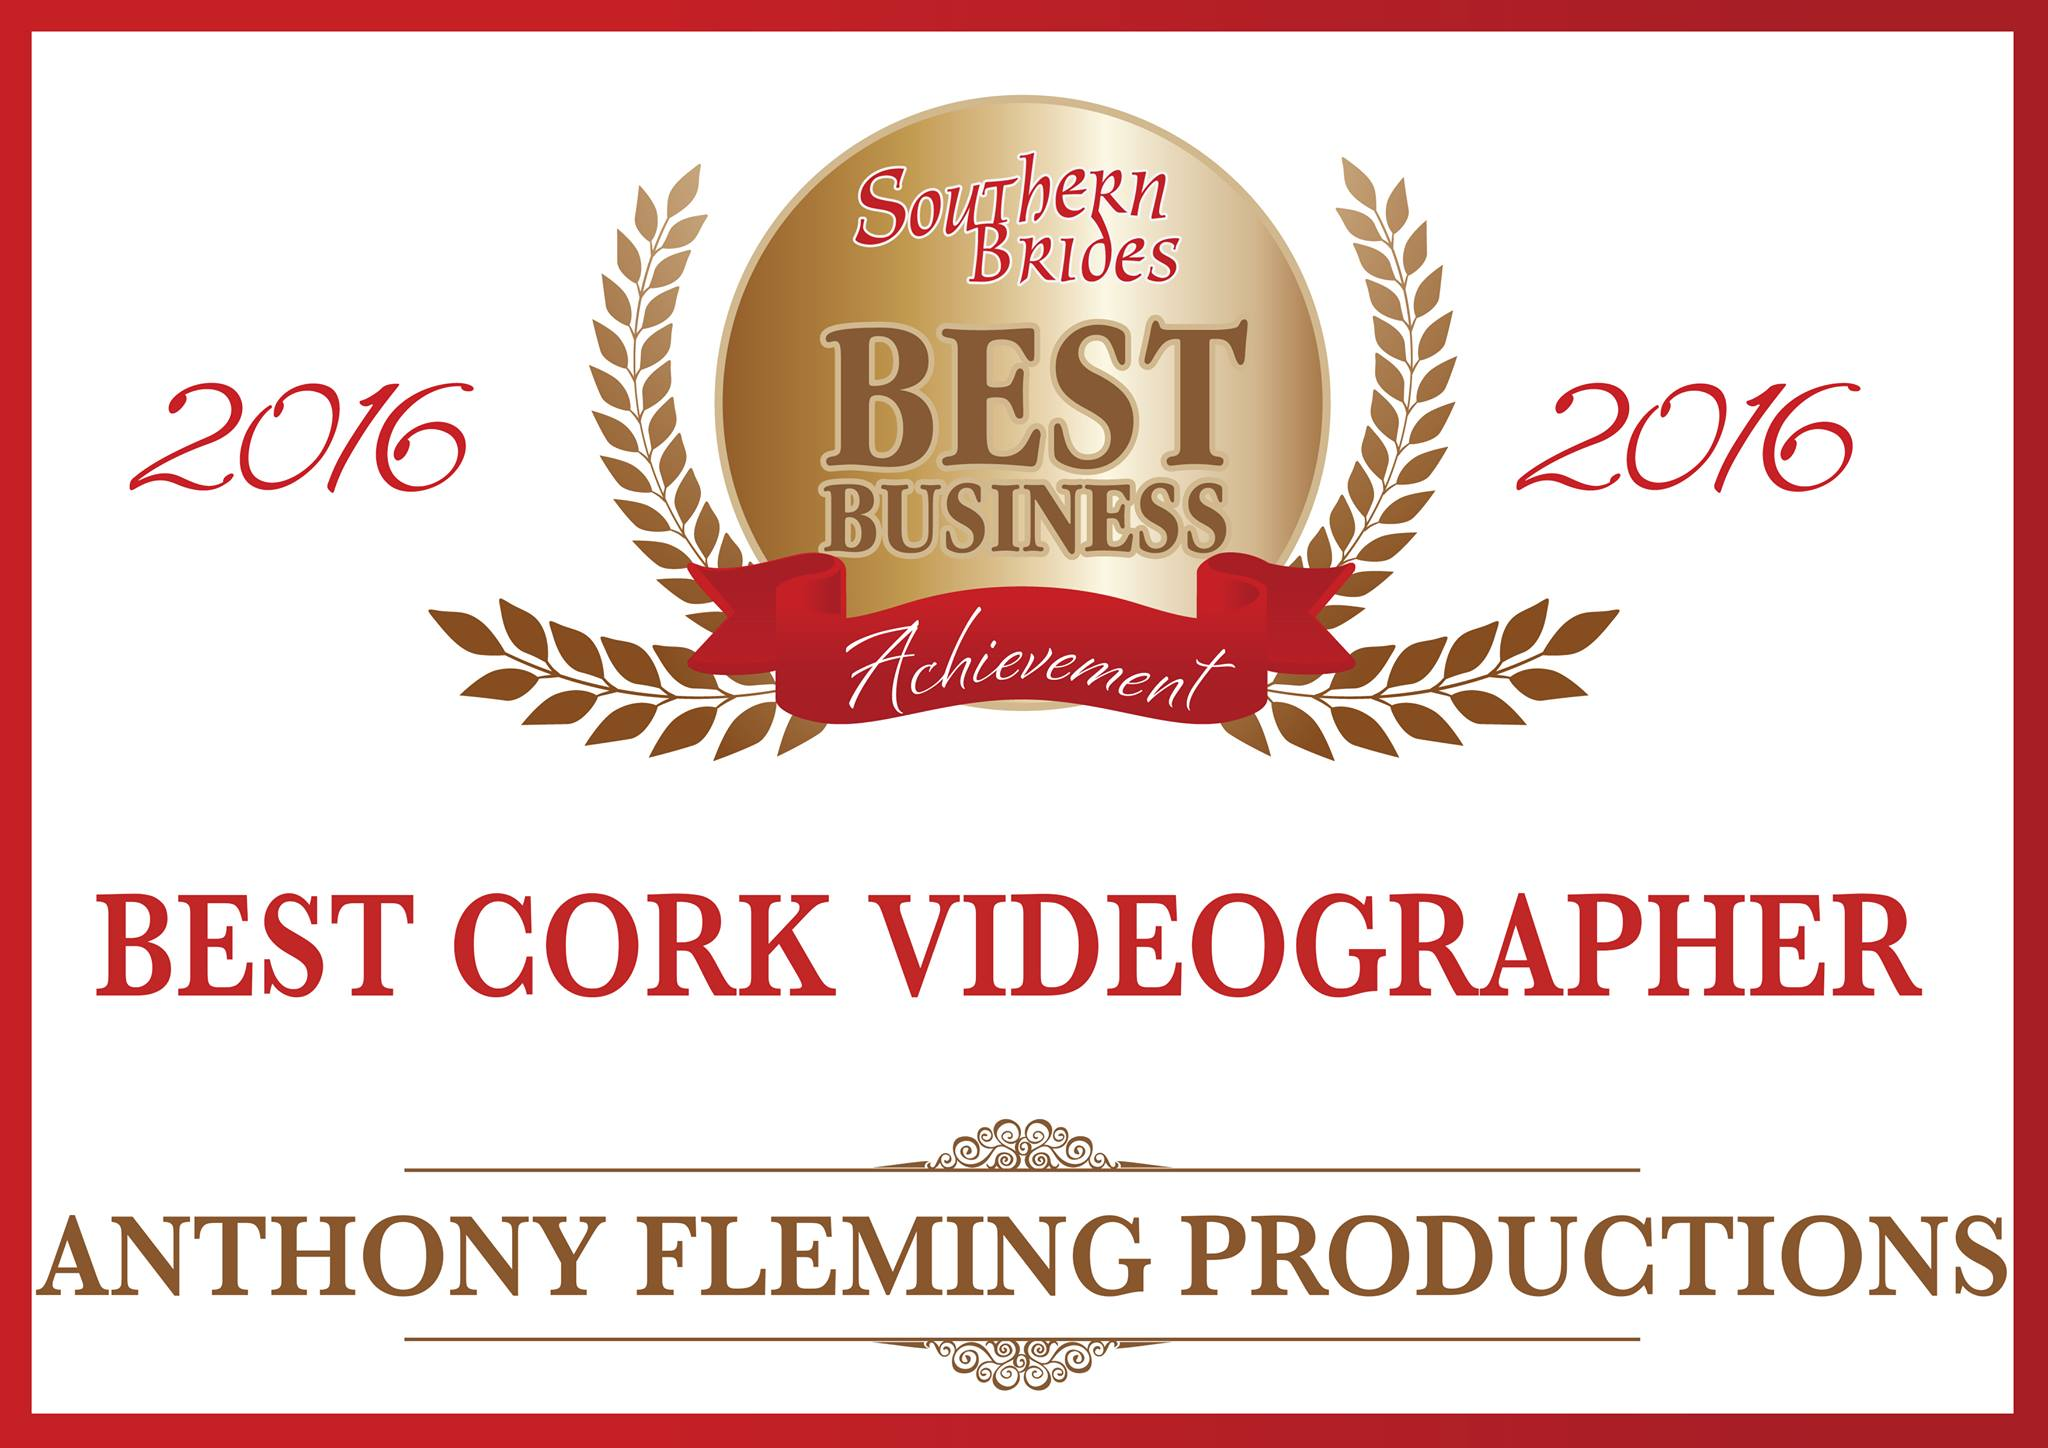 Best Cork Videographer 2016